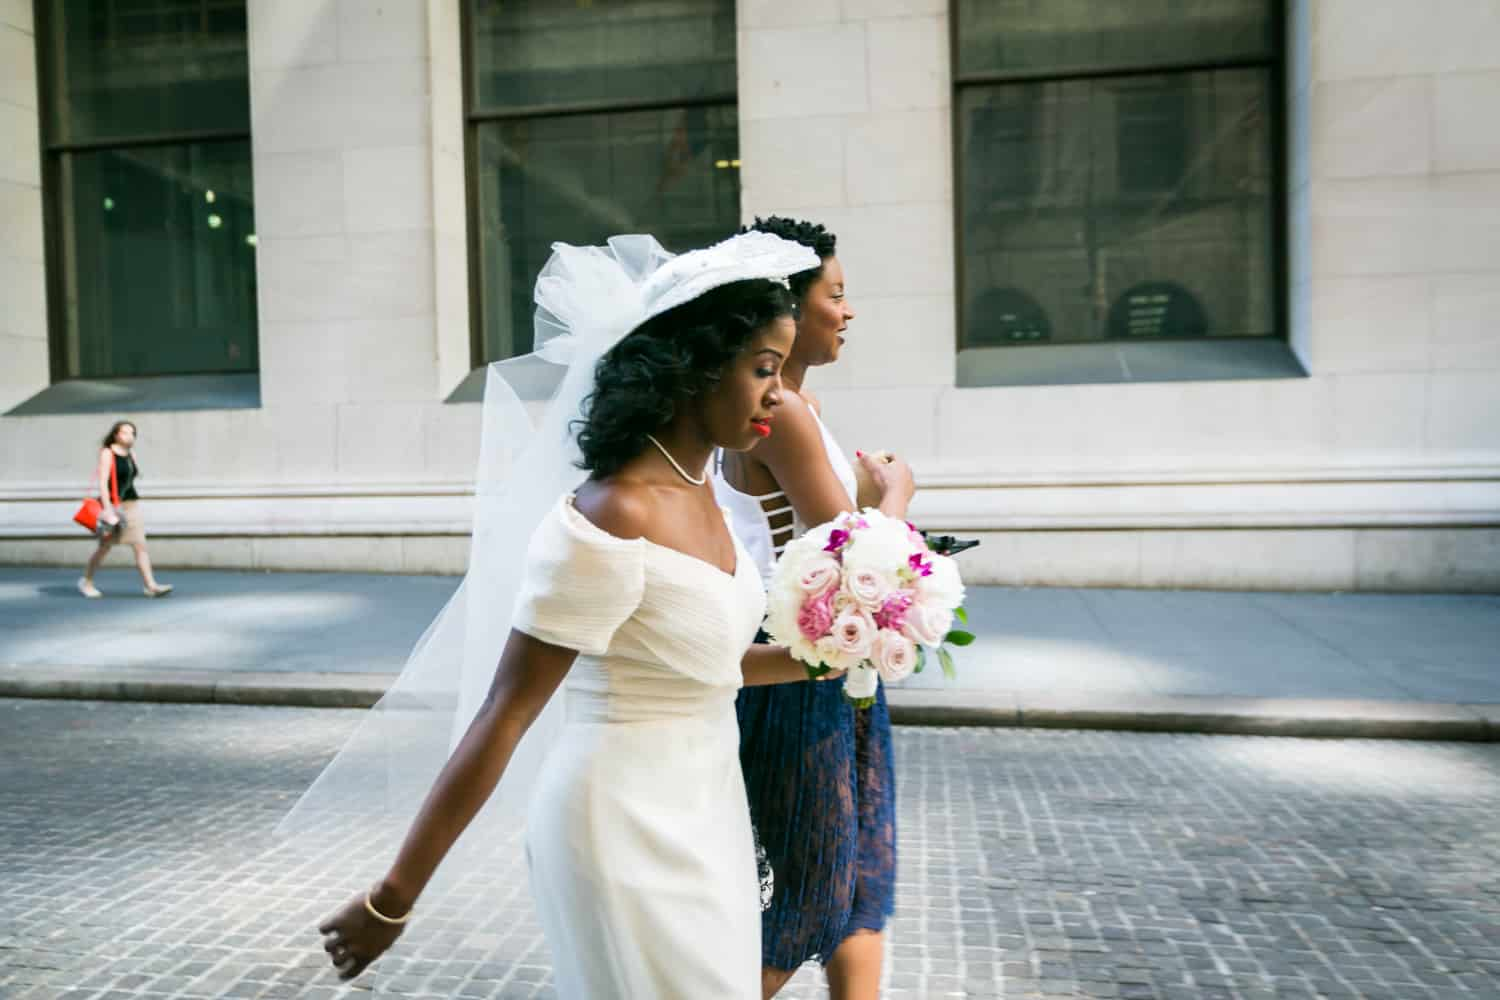 Bride and maid of honor walking to ceremony on cobblestone street